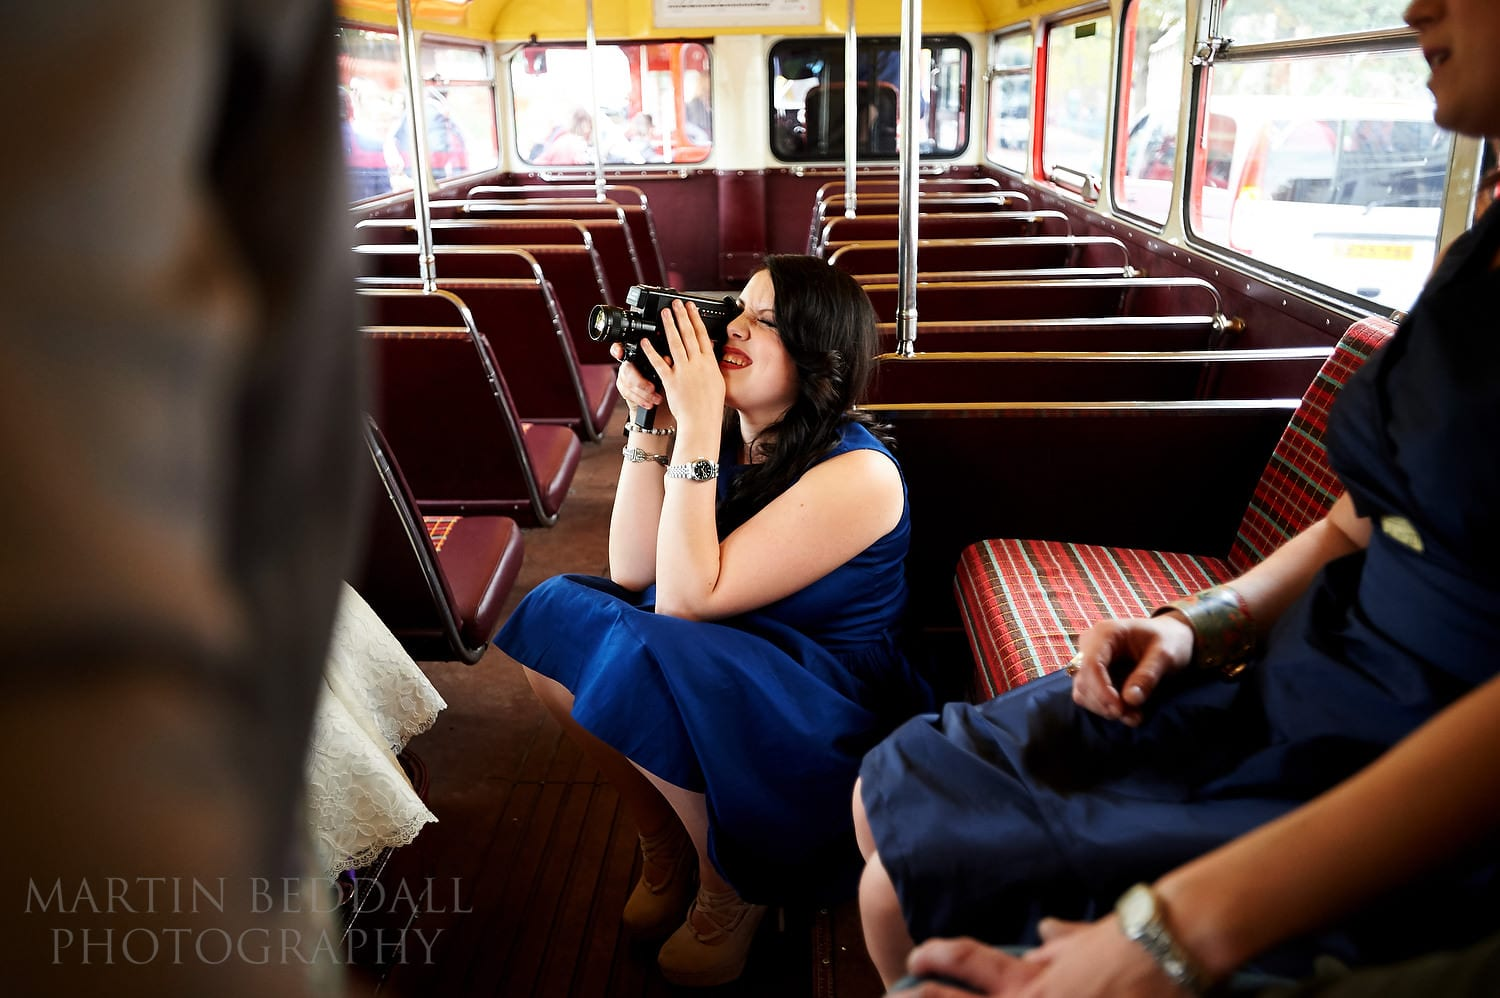 Filming on the bus